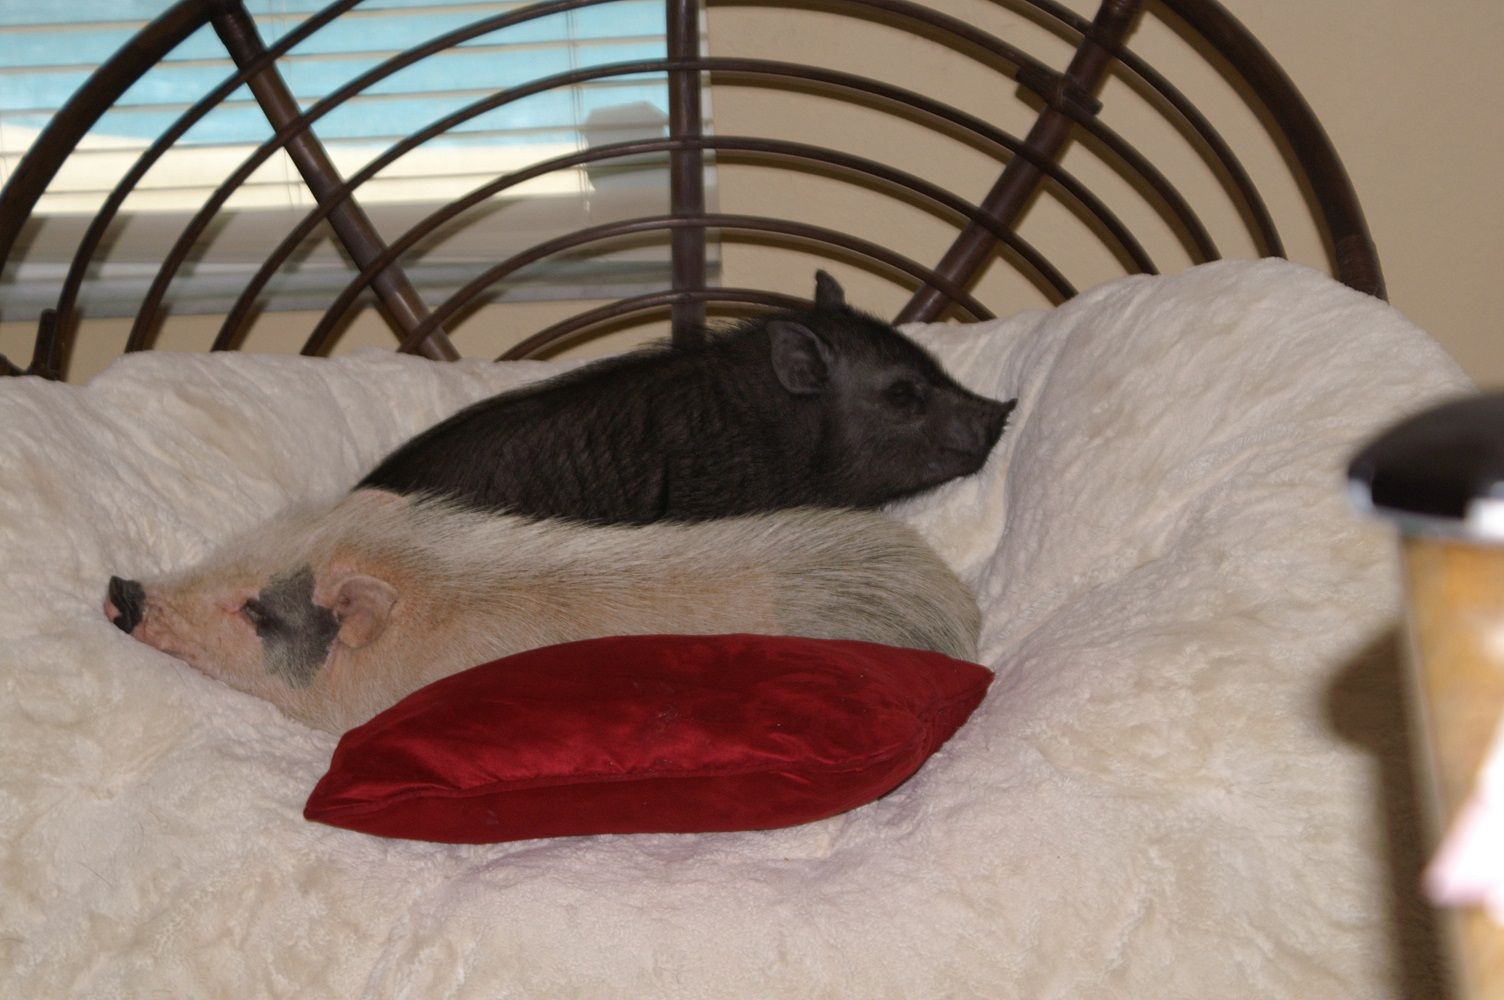 looks like the piggies are having cushion trouble!!!